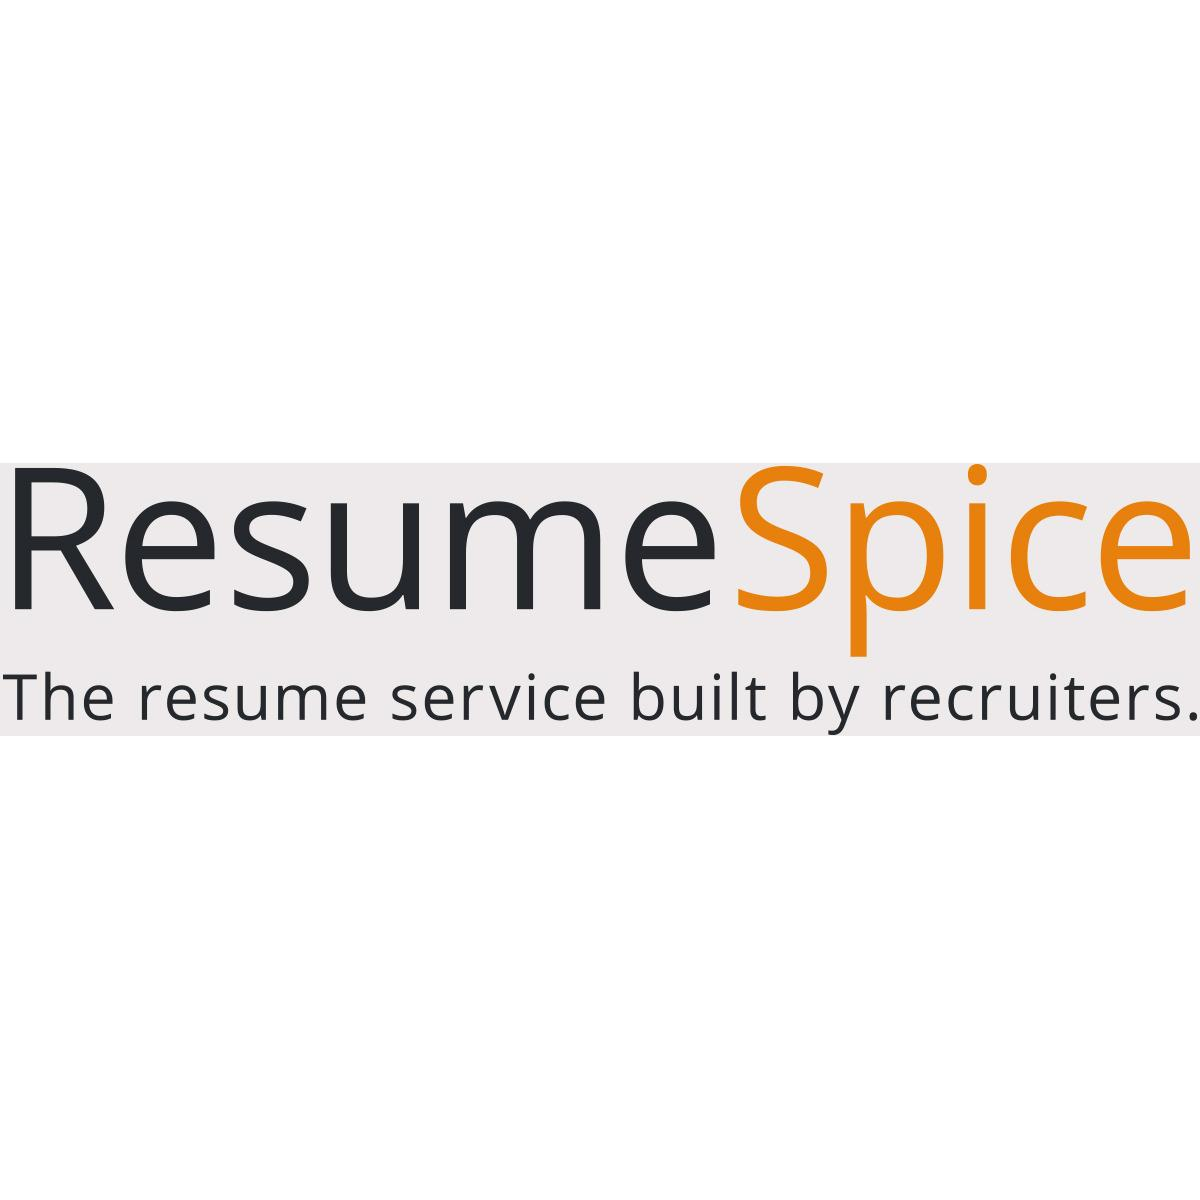 resumespice resume writing service houston tx